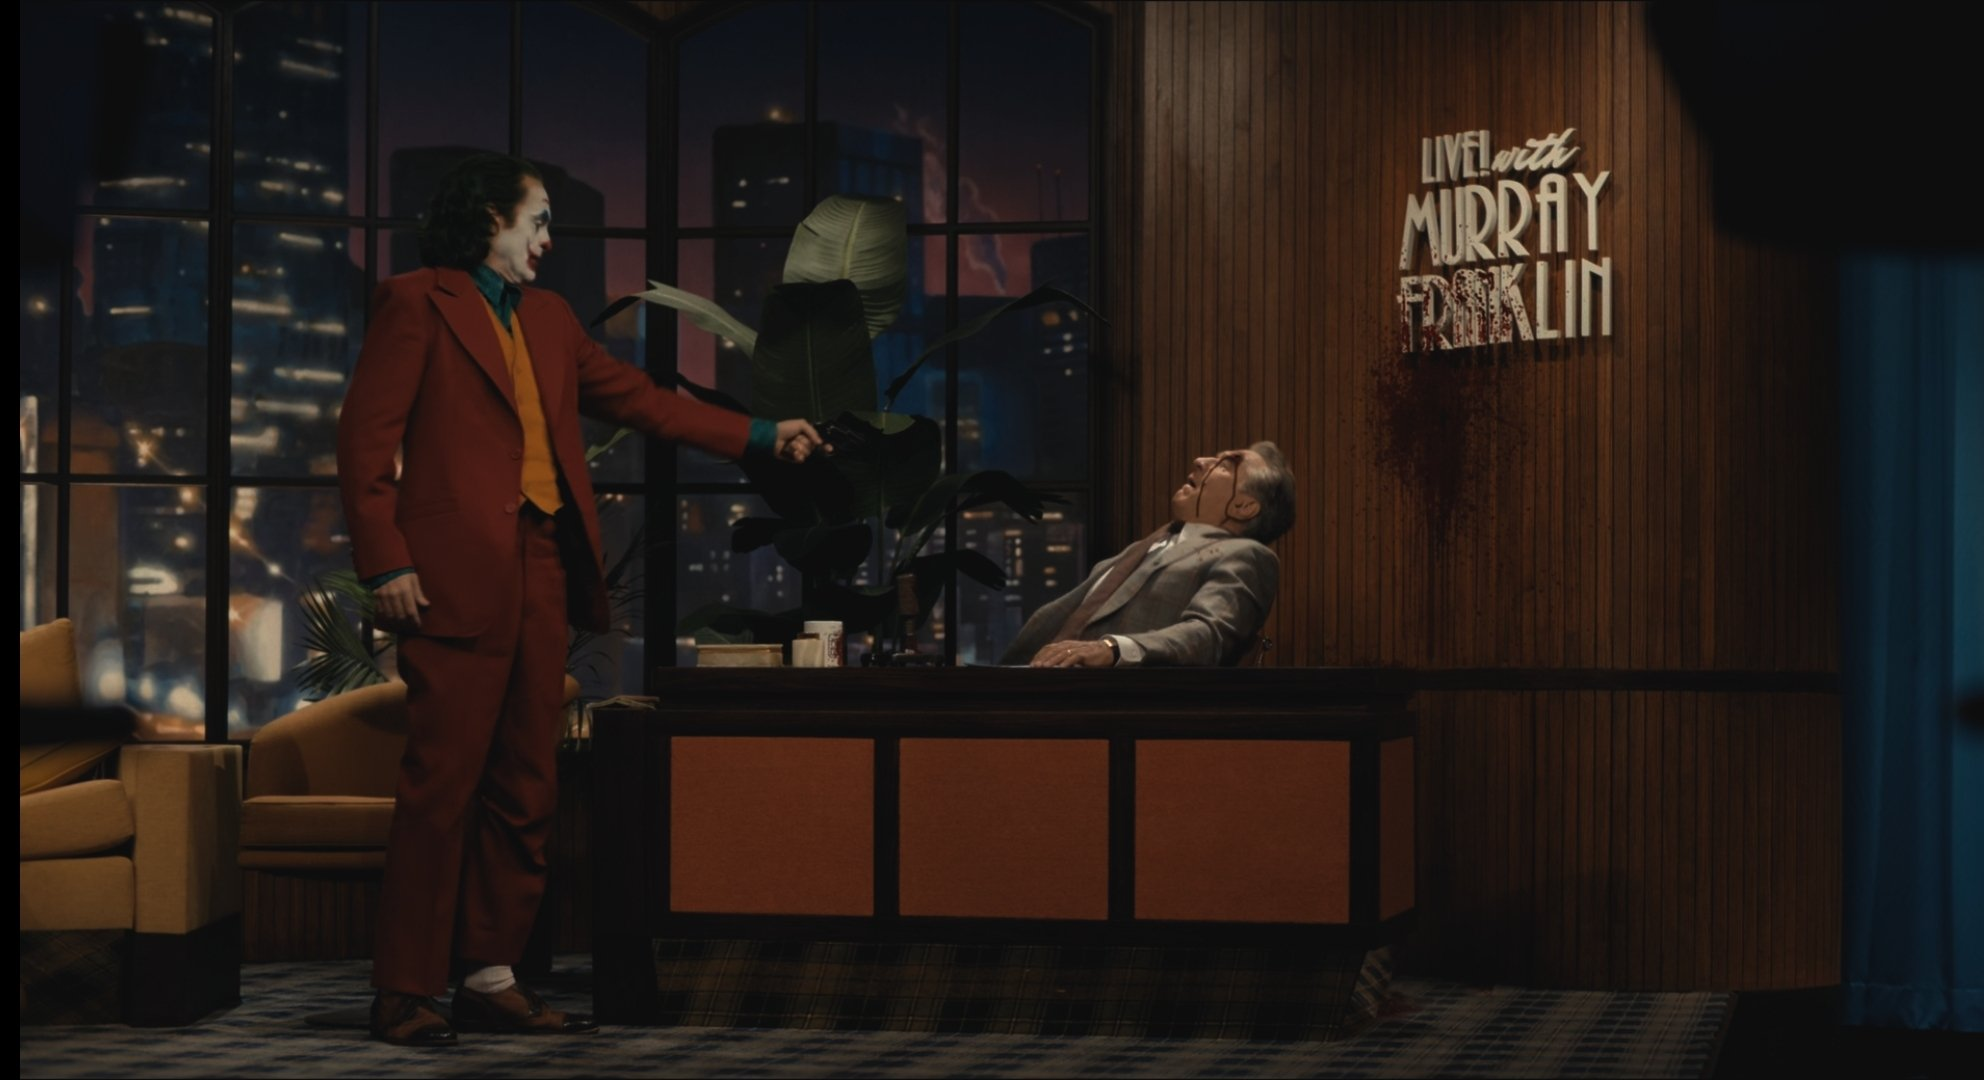 """Thy dan site loves you #person5 Five Finga death p on Twitter: """"*joker gets  up shoots again and drops gun walks to camera*… """""""